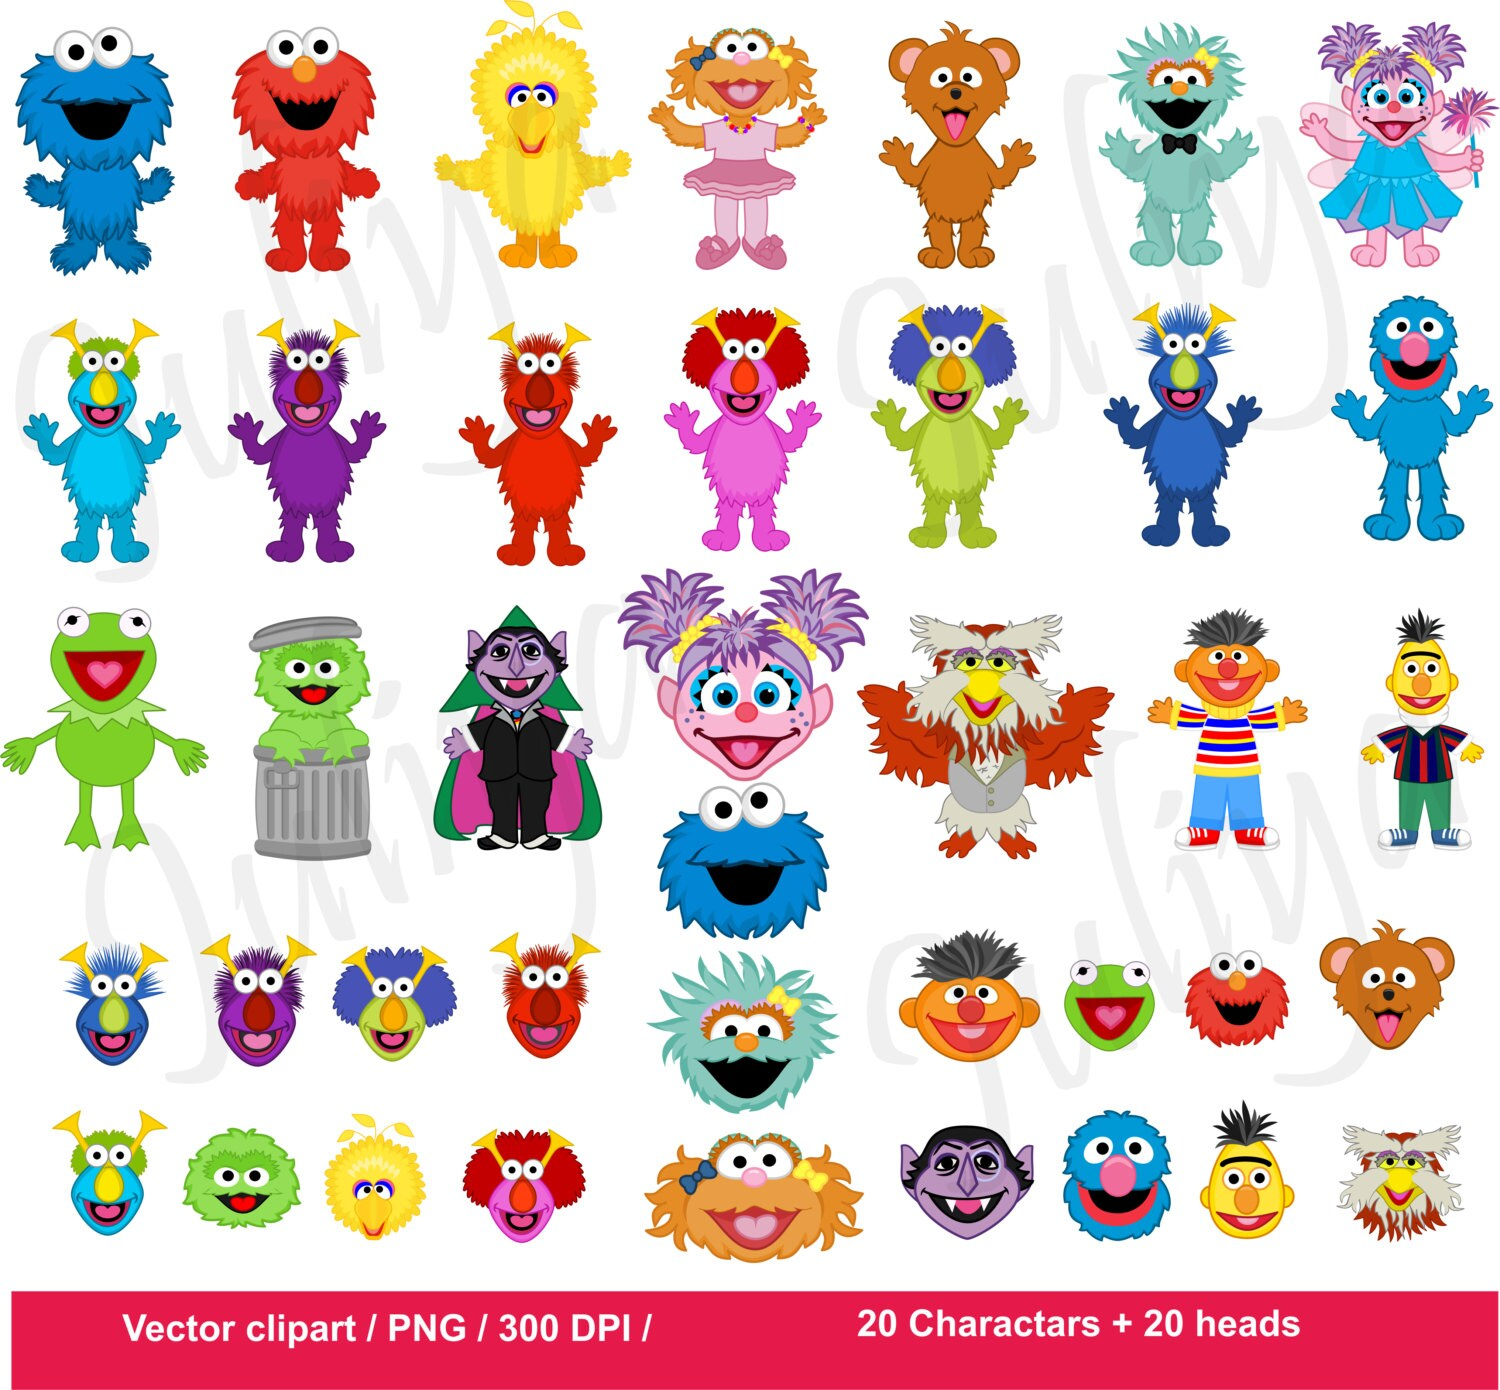 Monsters clipart / Monsters vector / Monsters Heads / Monster Clip ... for Street Clipart Png  155fiz